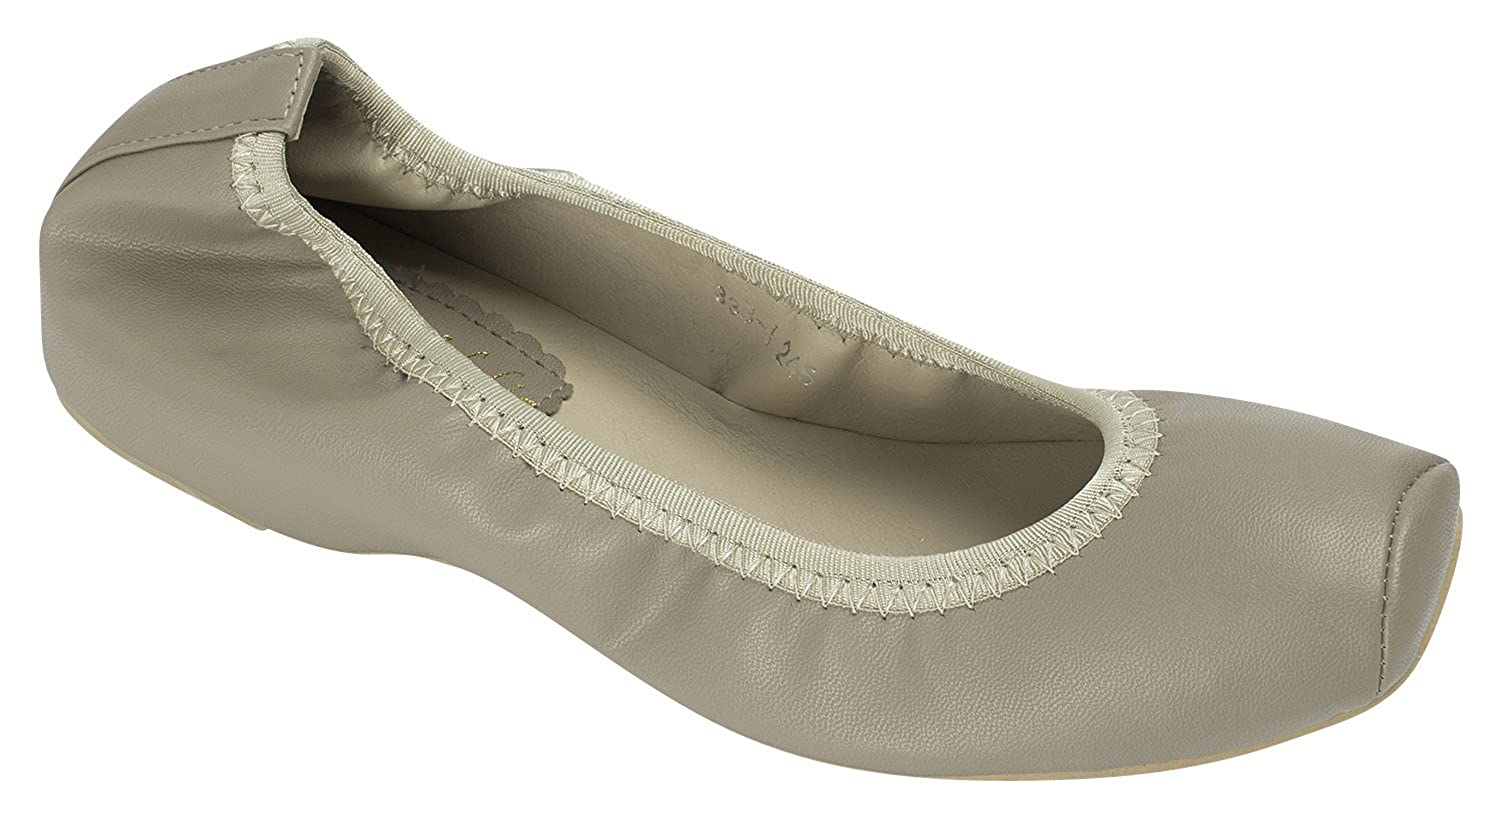 AnnaKastle Womens Vegan Leather Square Toe Ballet Flats Slip On Shoes